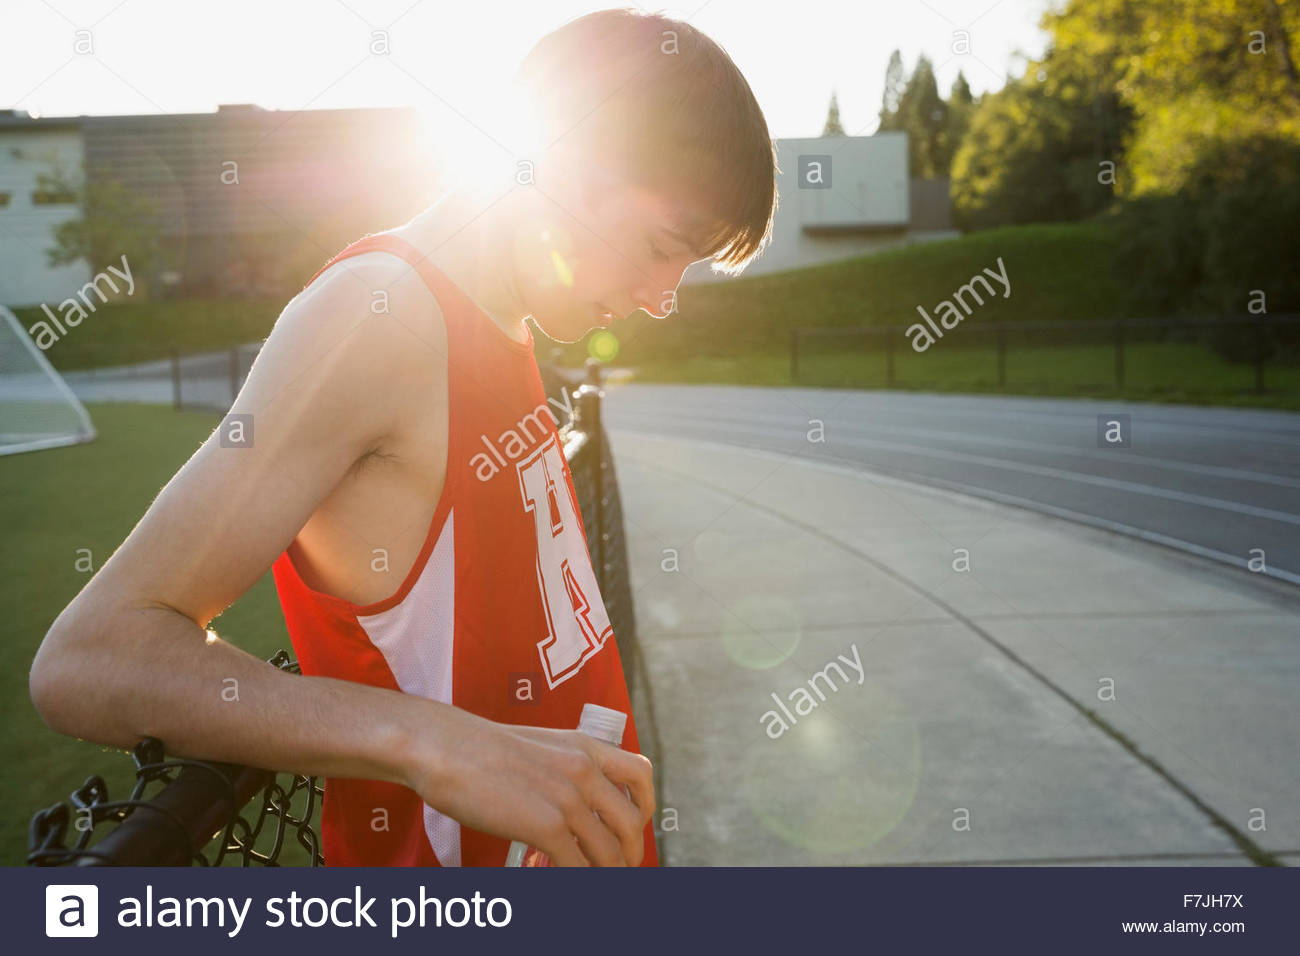 High school track and field athlete resting - Stock Image